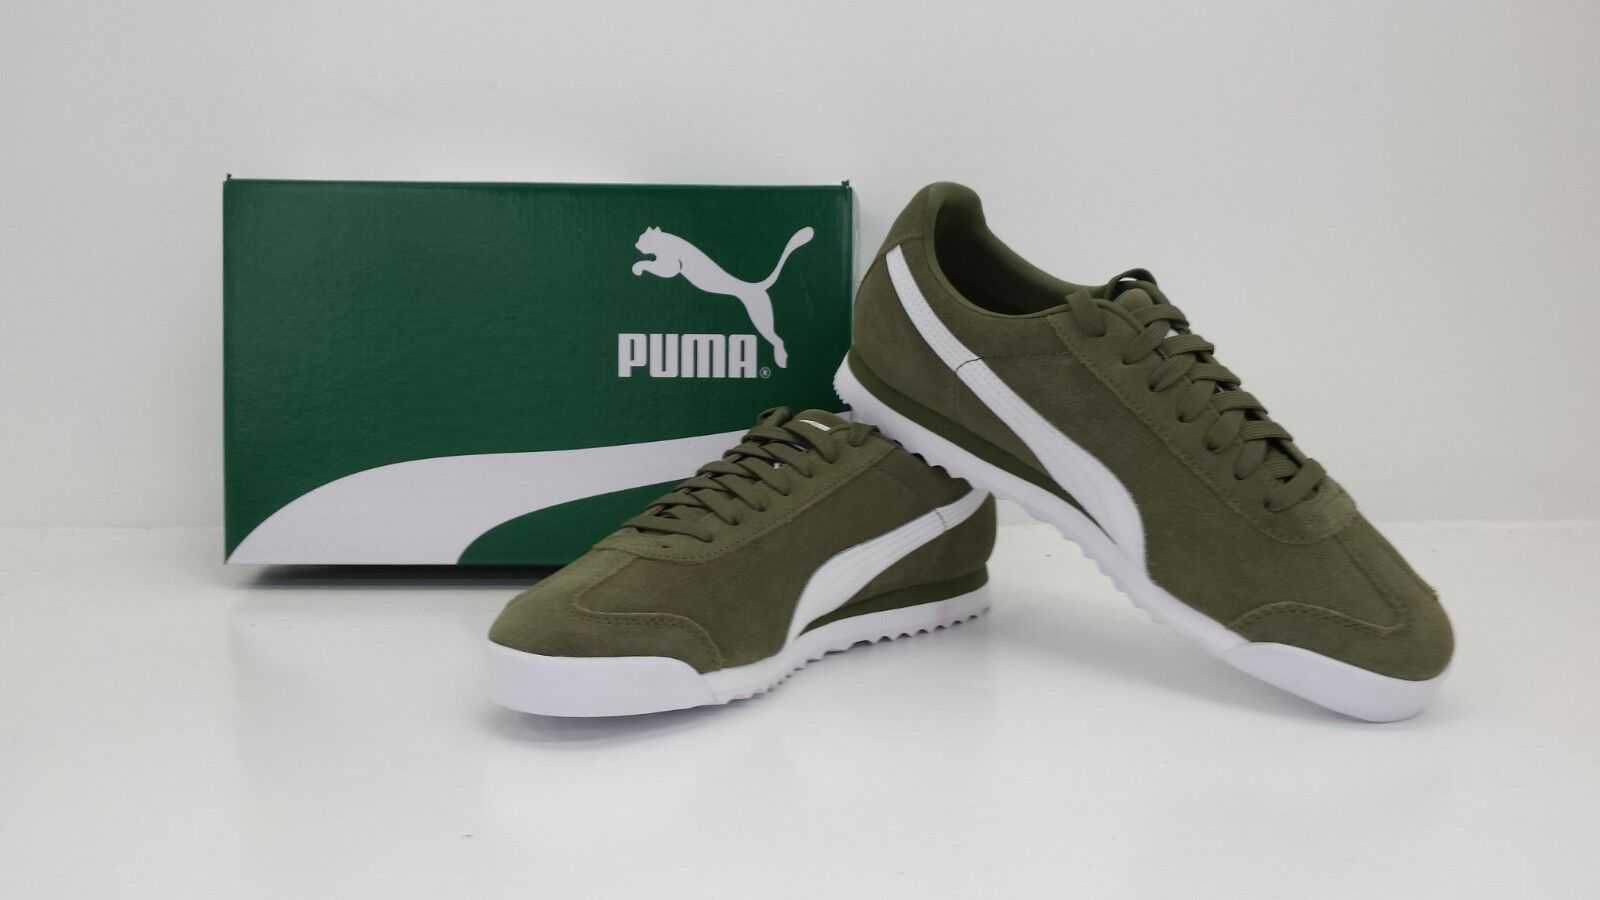 PUMA ROMA SUEDE SNEAKERS CAPULET OLIVE WHITE 365437 04 - BRAND NEW IN BOX